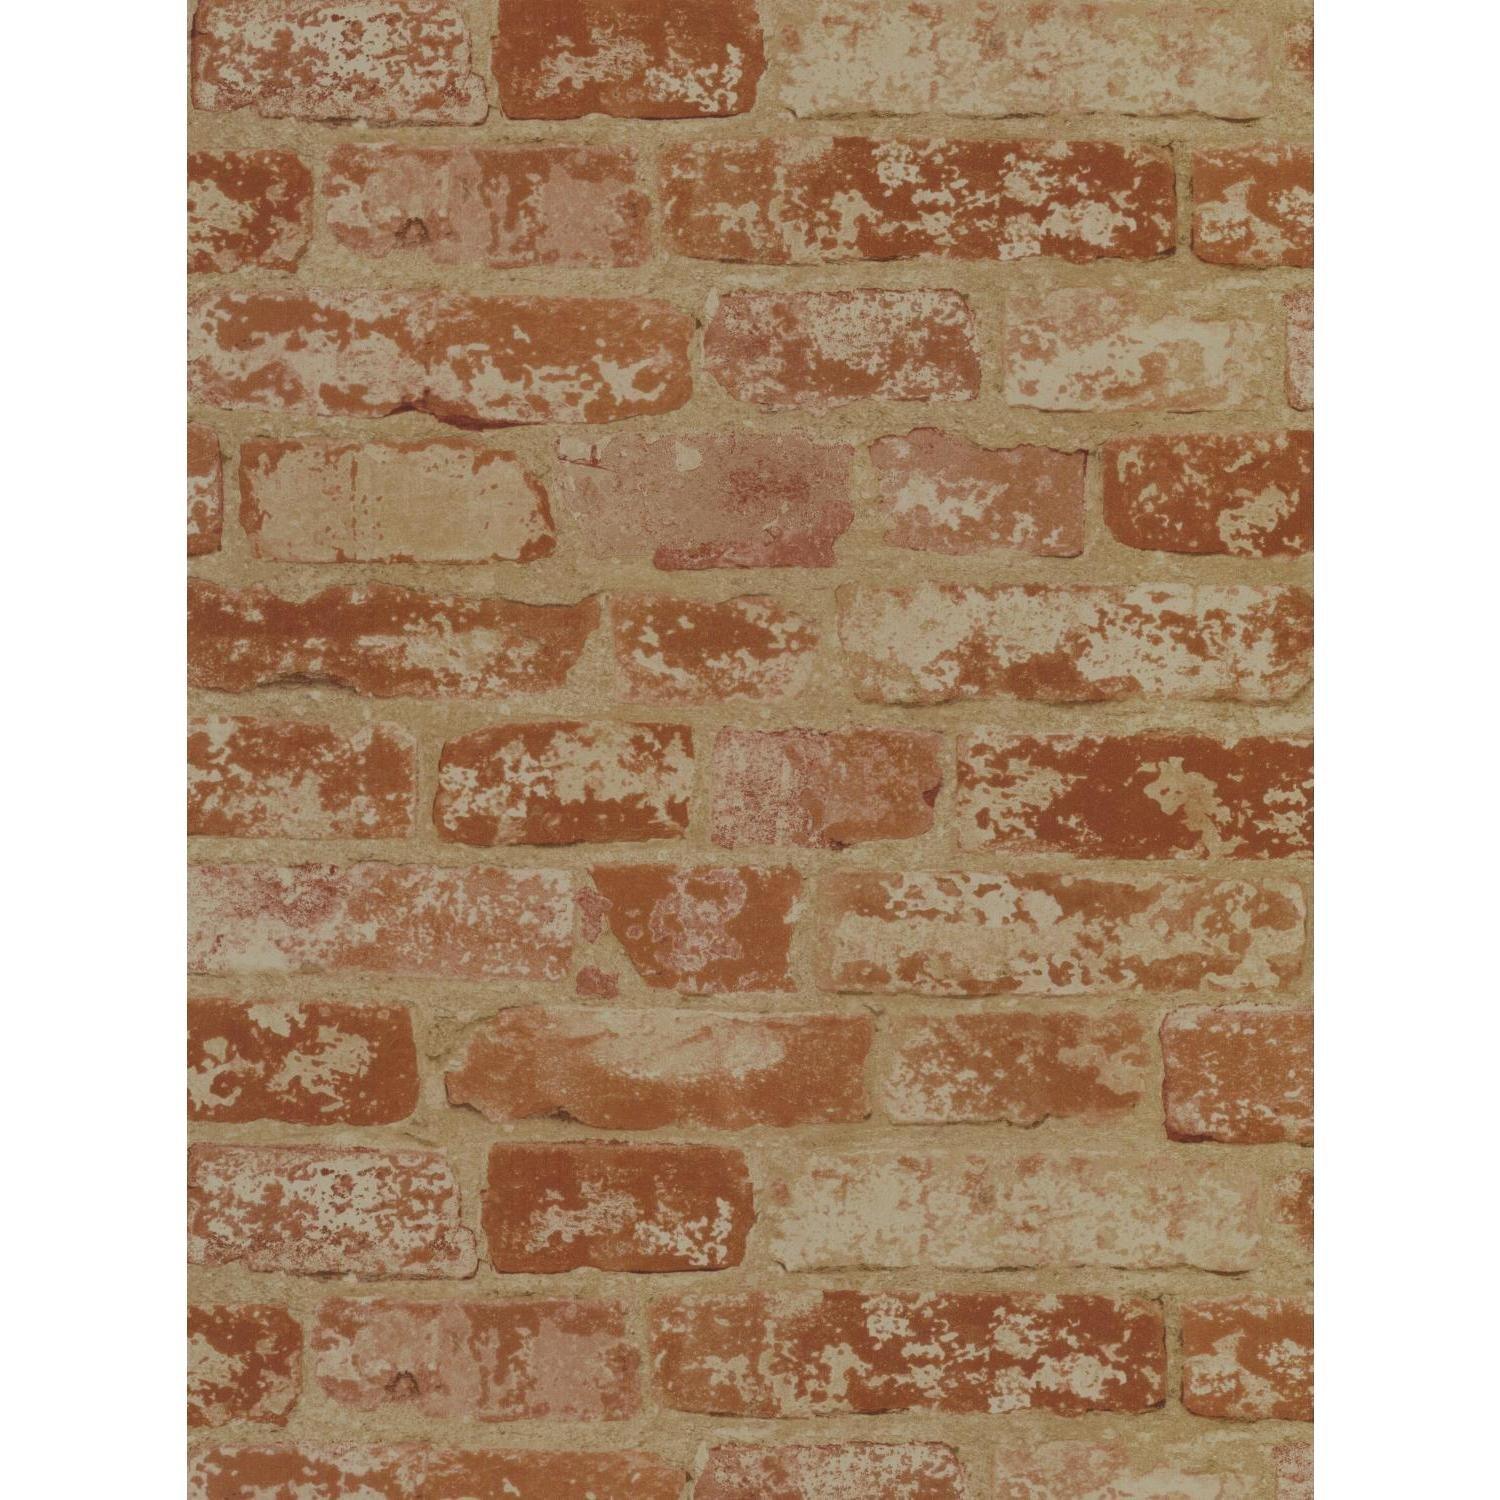 York Wallcoverings Wall In A Box BZ9206 Stuccoed Brick Wallpaper- Ultra Removable